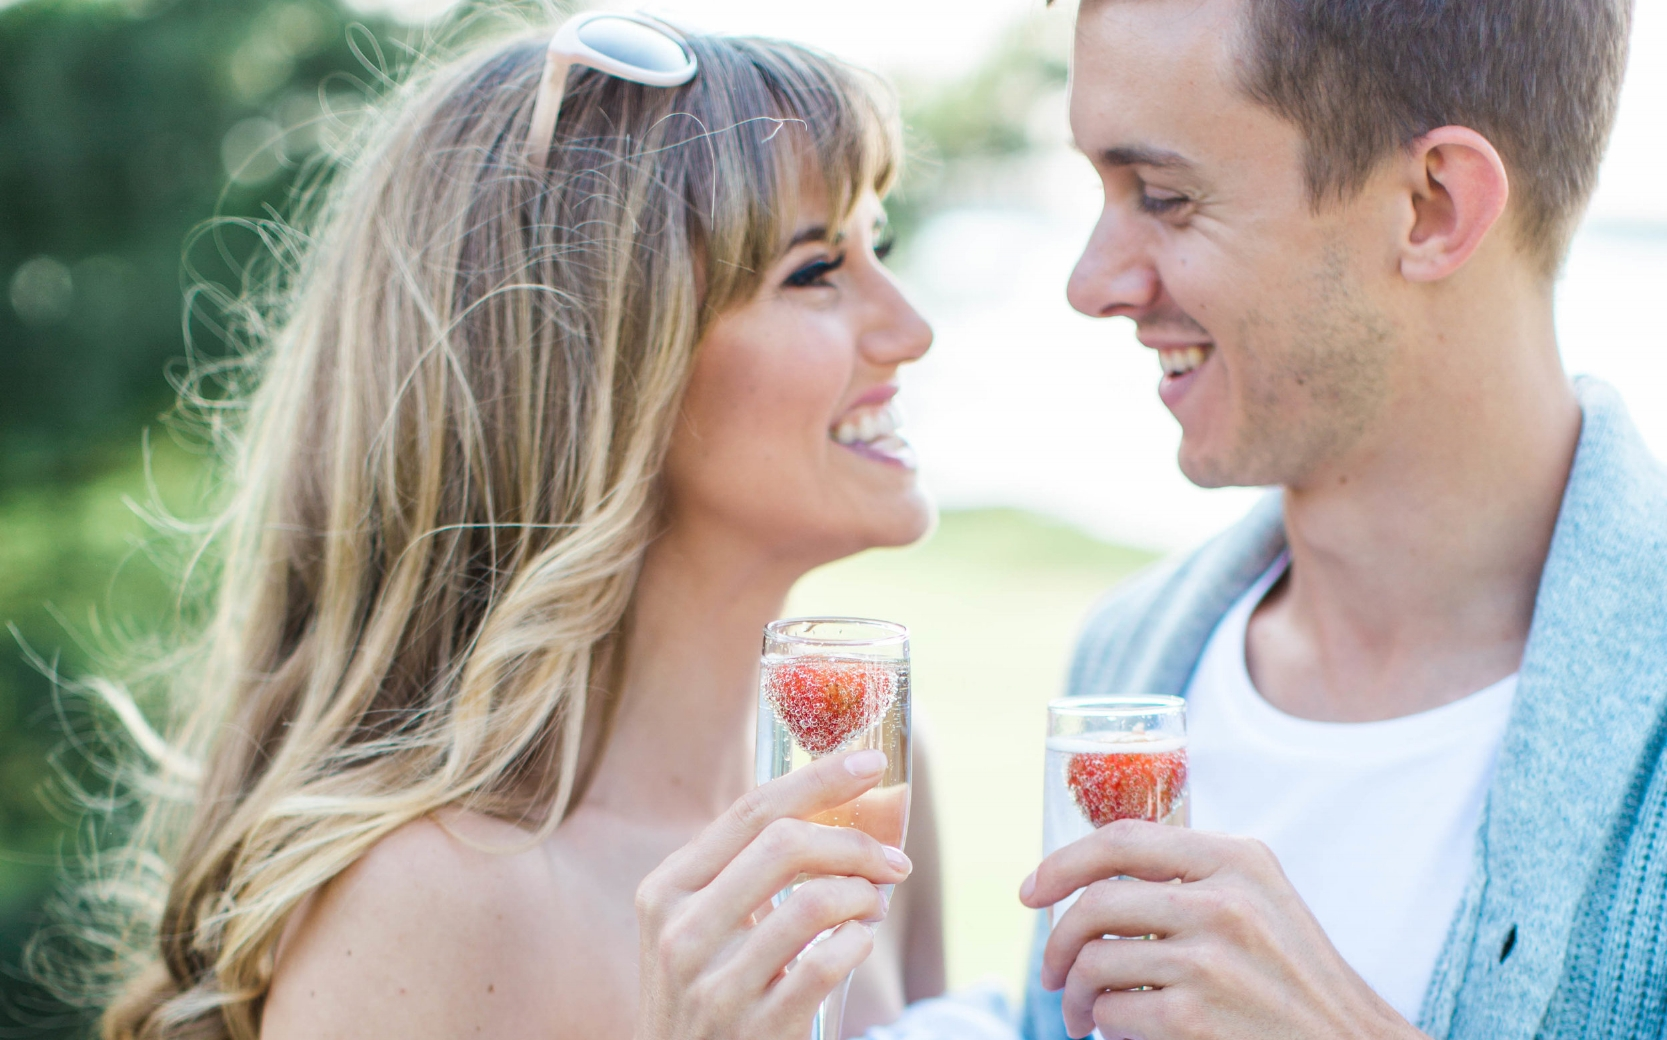 Summer Valentine Romantic Getaway - Who said Valentine's Day is just for February? Surprise your sweetheart and plan a romantic getaway in the summer. Escape the everyday and enjoy a special five-course tasting menu where you'll experience a culinary seduction from start to finish.